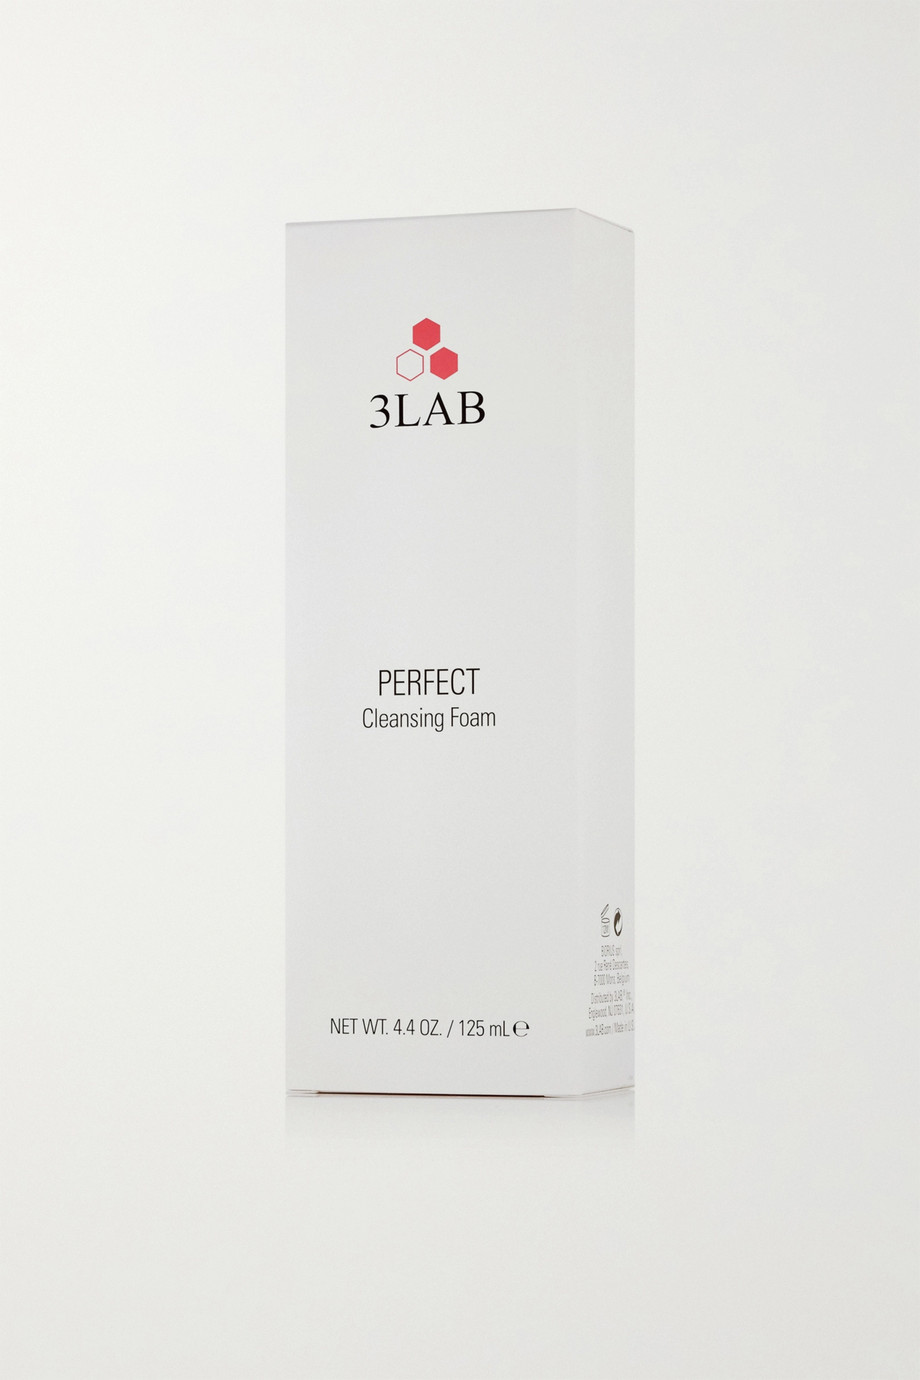 3LAB Perfect Cleansing Foam, 125 ml – Reinigungsschaum